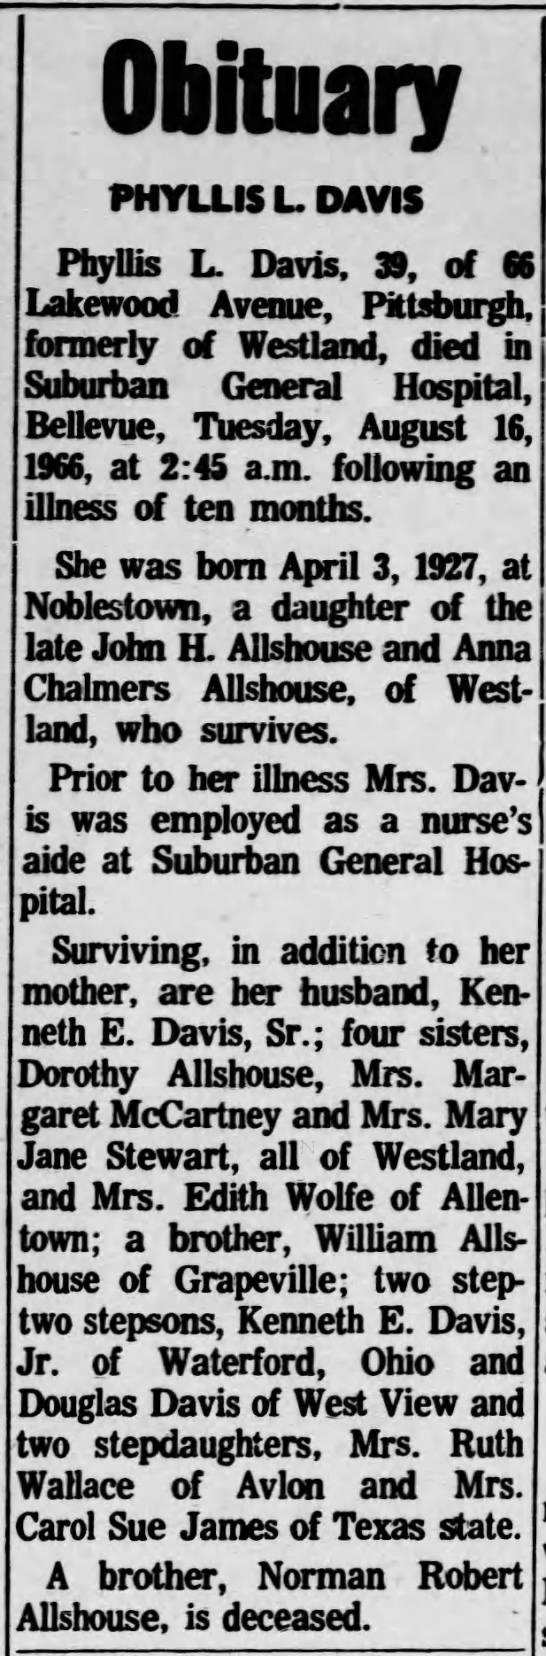 Obituary of Phyllis L Davis - dated 17 Aug 1966